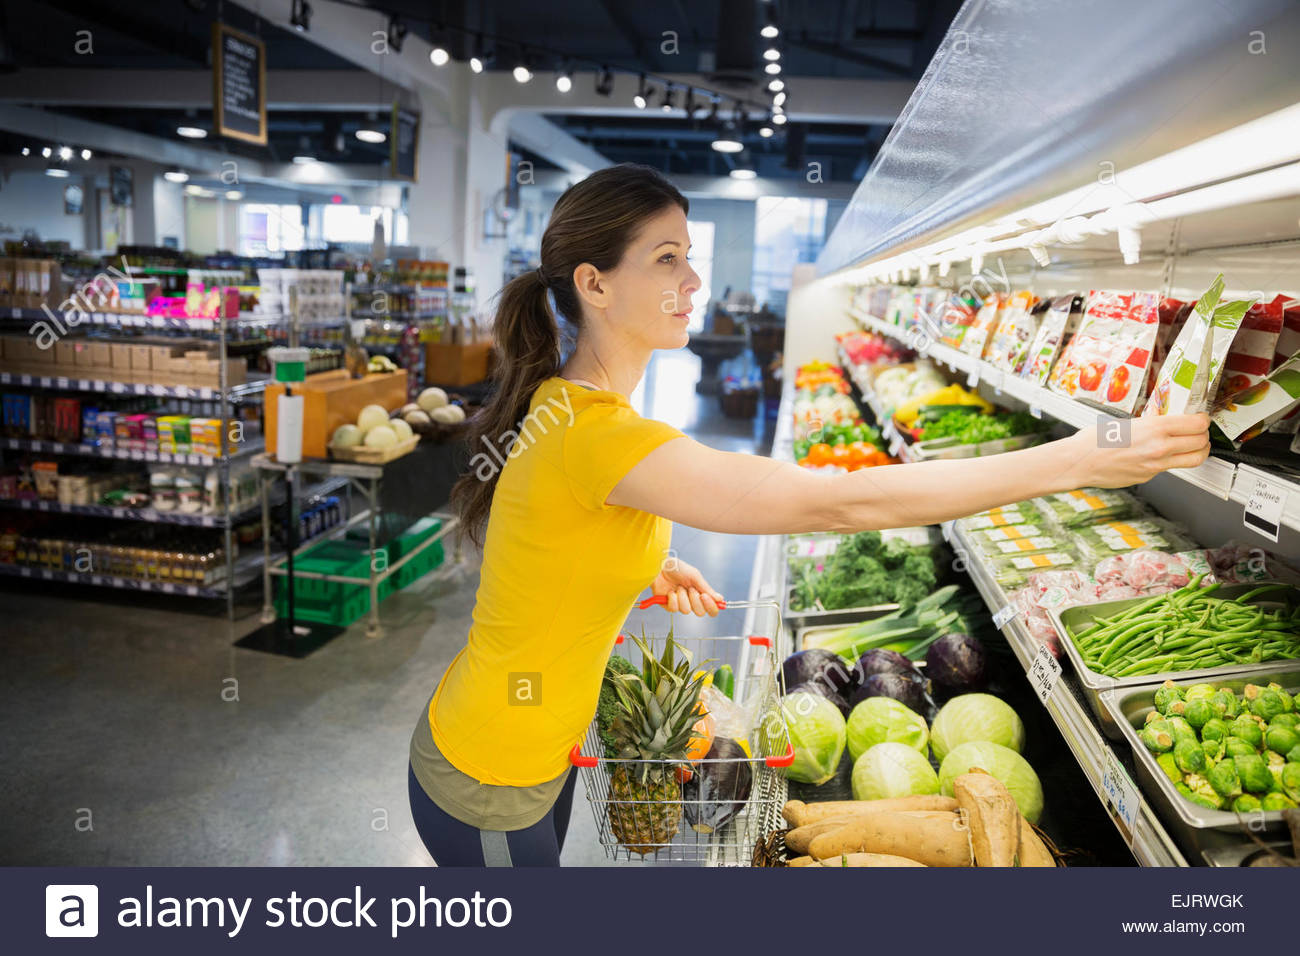 Woman shopping for produce in grocery store Photo Stock